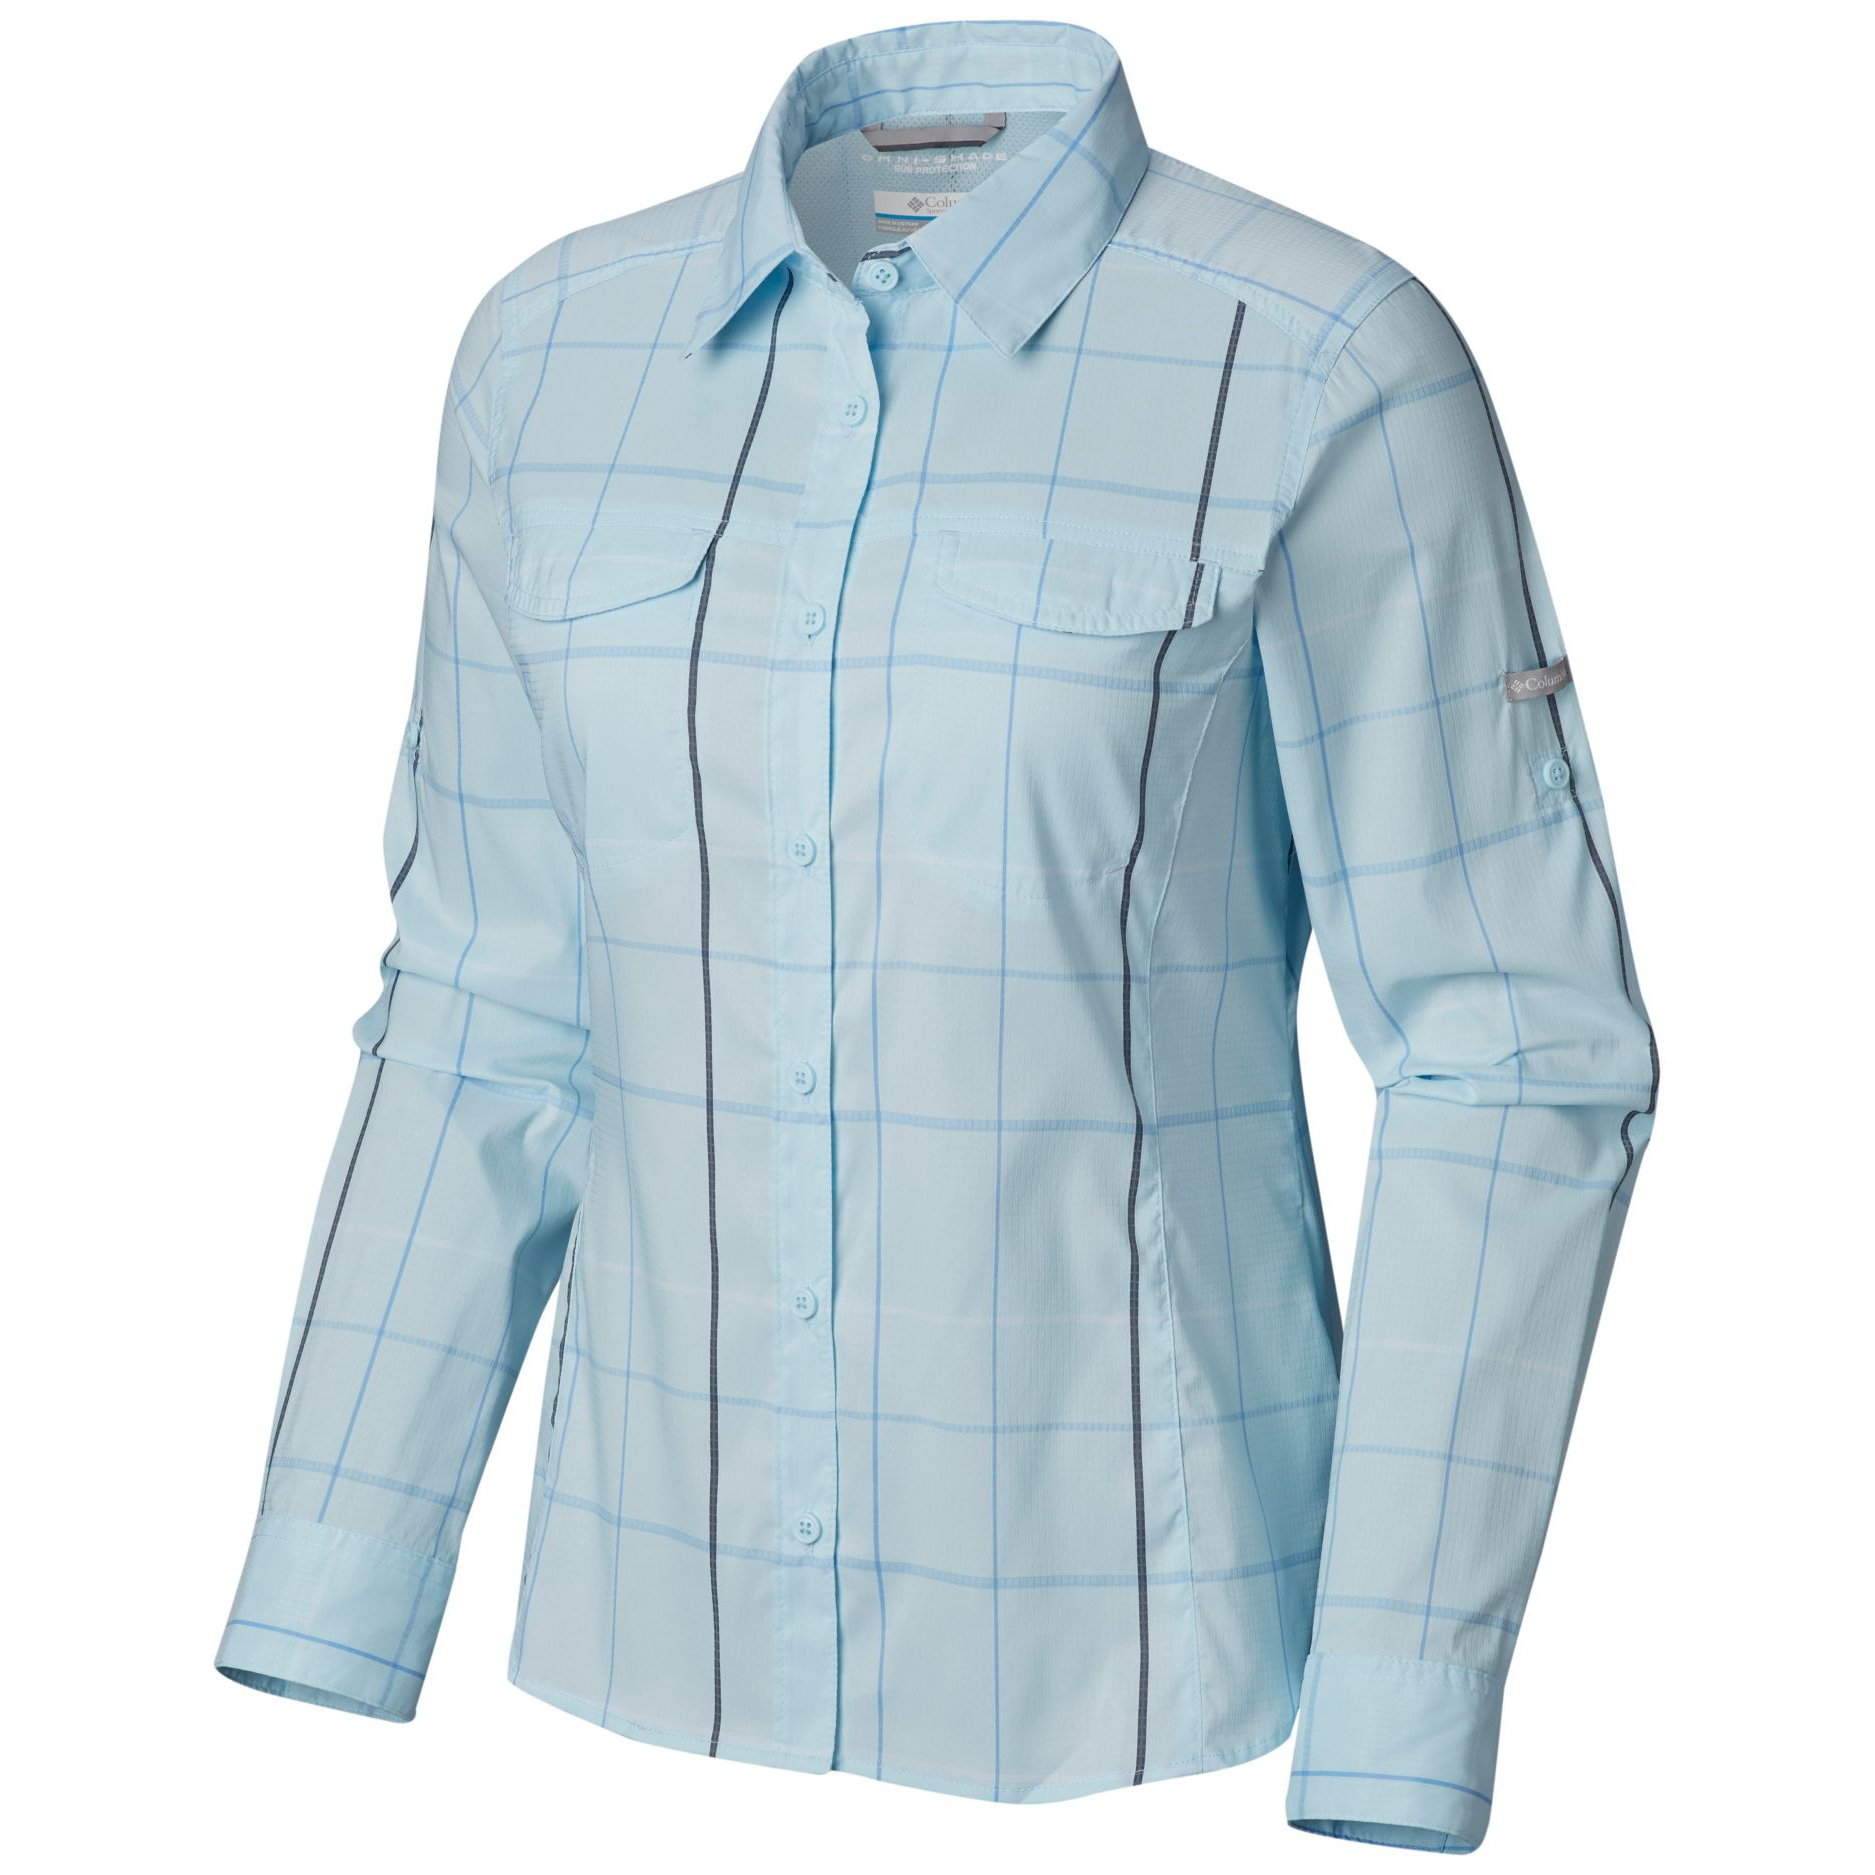 Silver Ridge Lite Plaid Shirt Long Sleeve - Women's